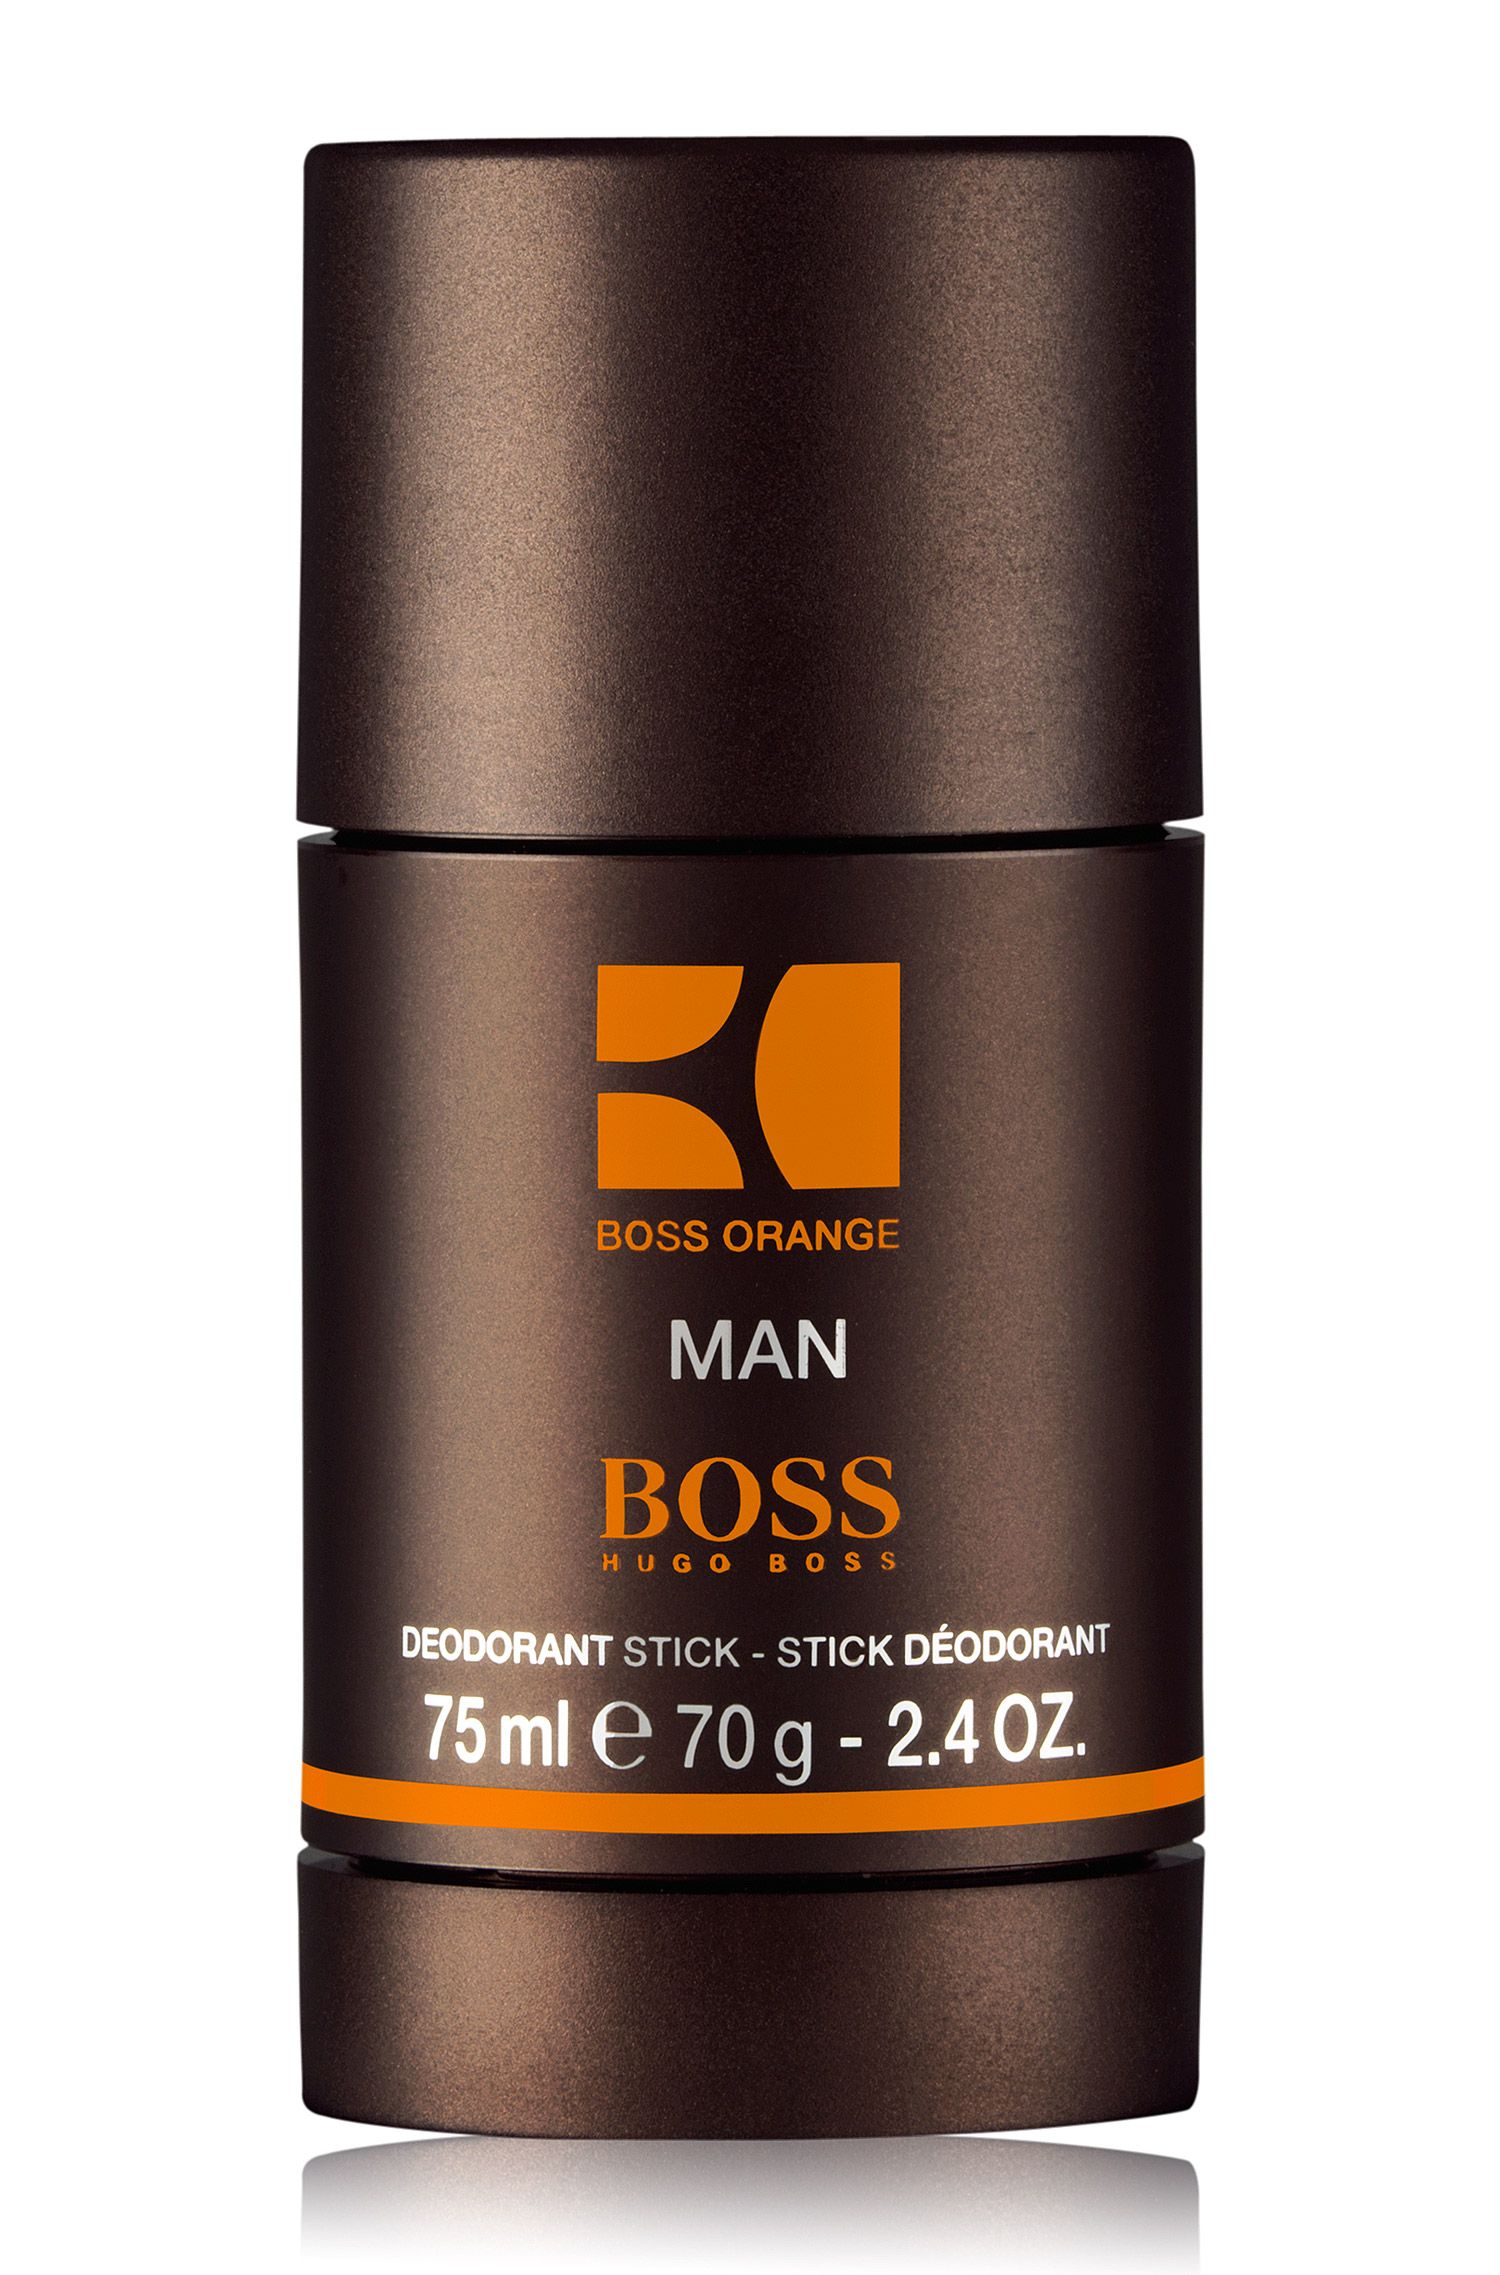 Déodorant Stick BOSS Orange Man, 75 ml